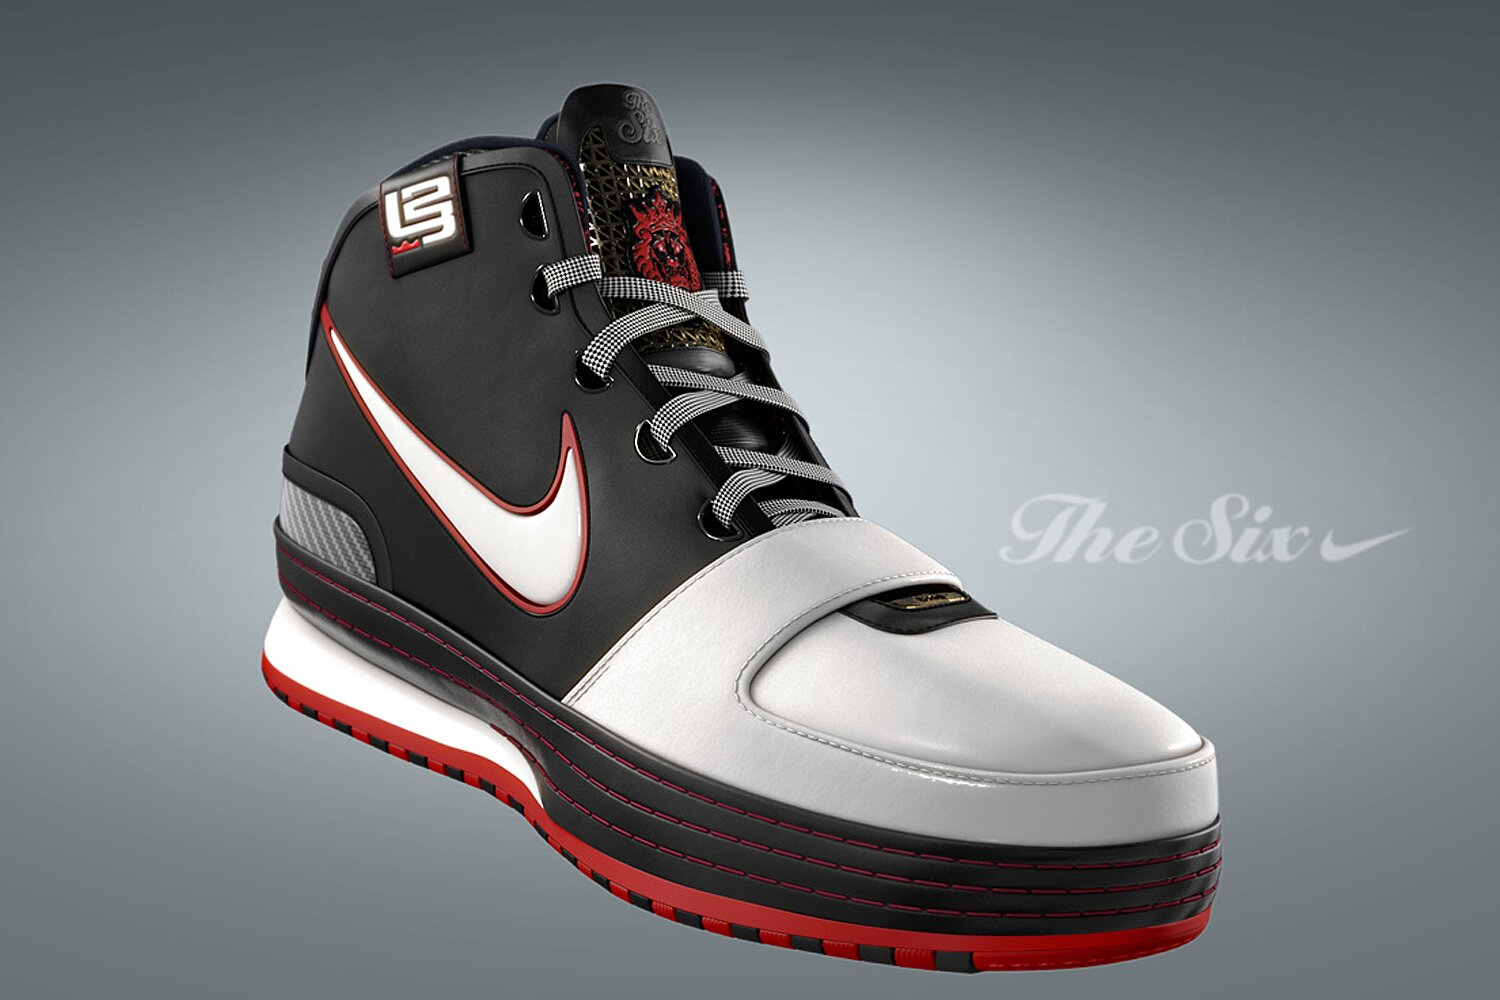 3f6b63a5b41 LeBron James Signature Sneakers  Ranking the Best of the King